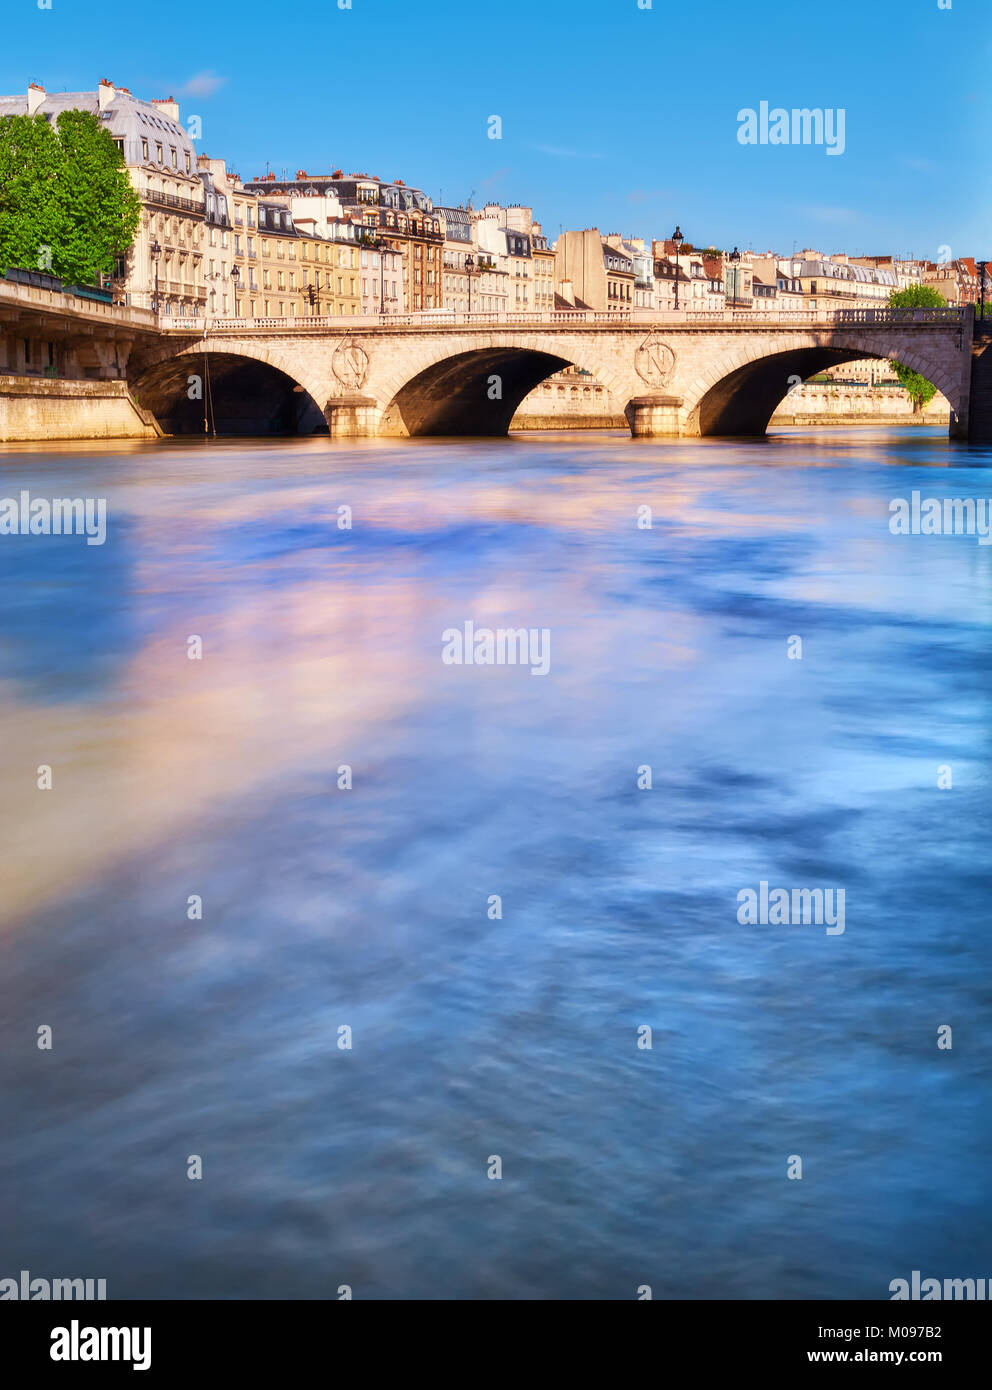 The Pont au Change connecting island Ile de la Cite with the Right Bank. Long exposure to poliish water in Seine - Stock Image